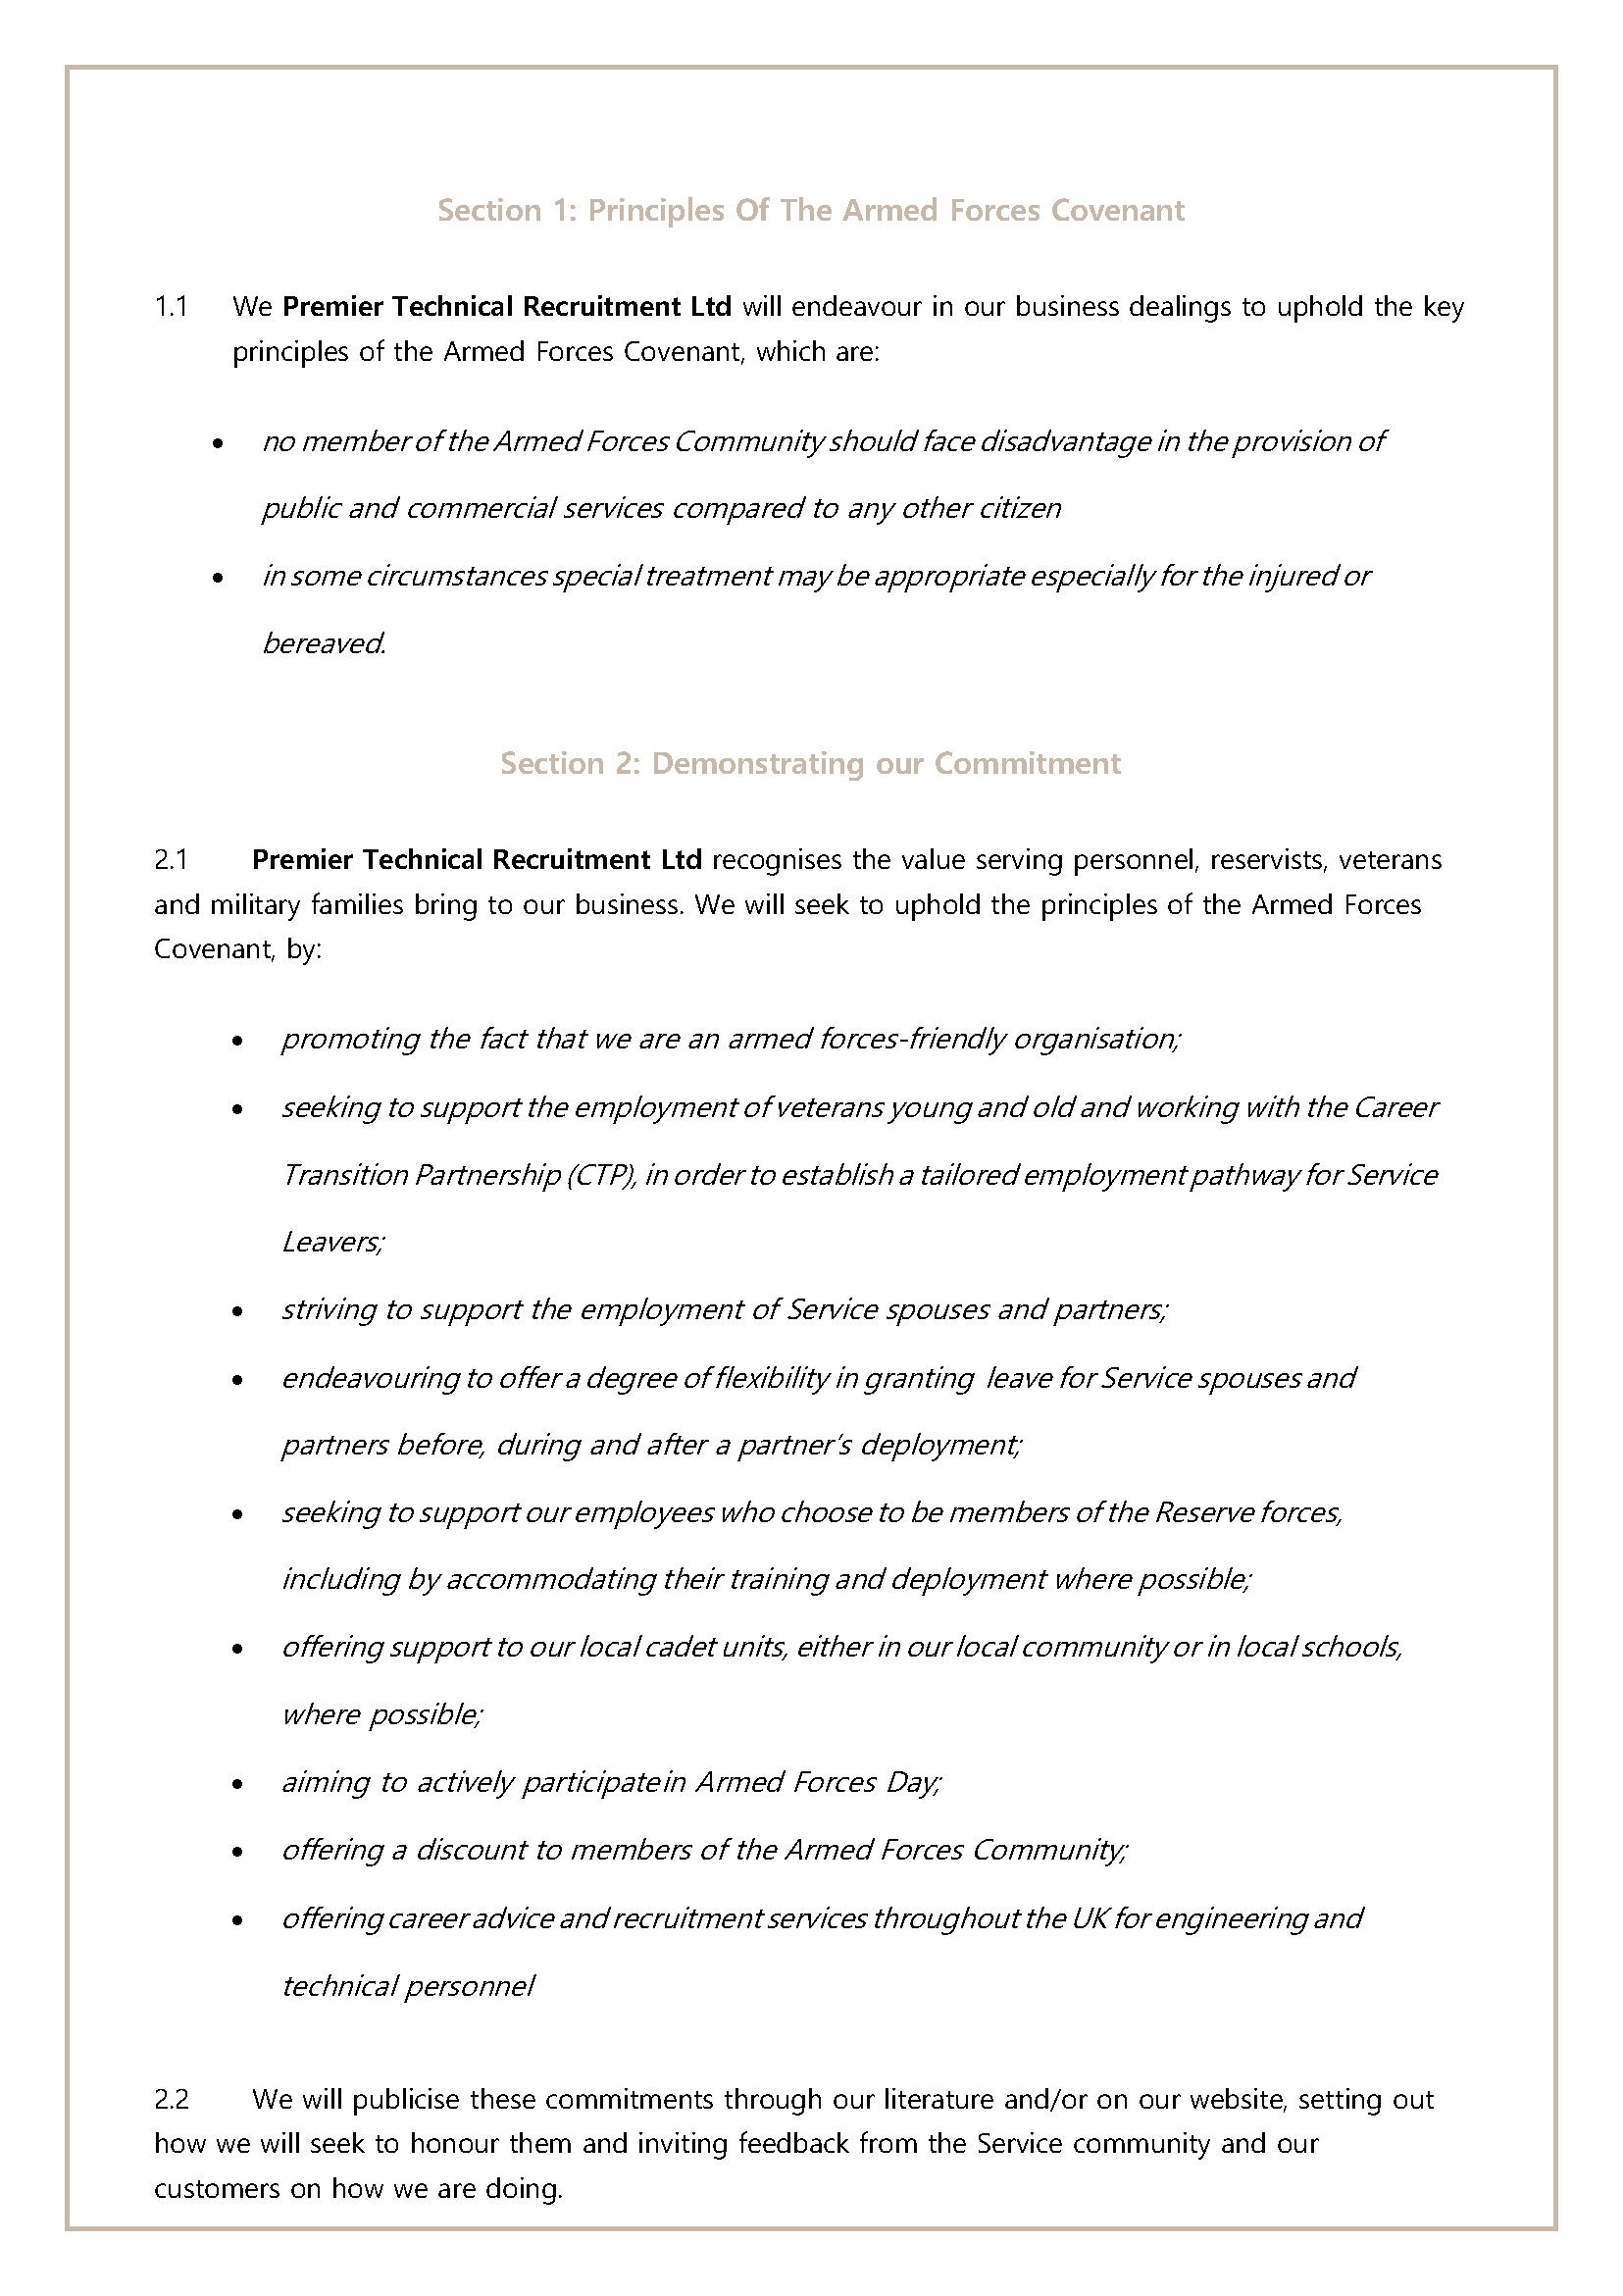 Premier Technical Recruitment Ltd Armed Forces Covenant Page 3